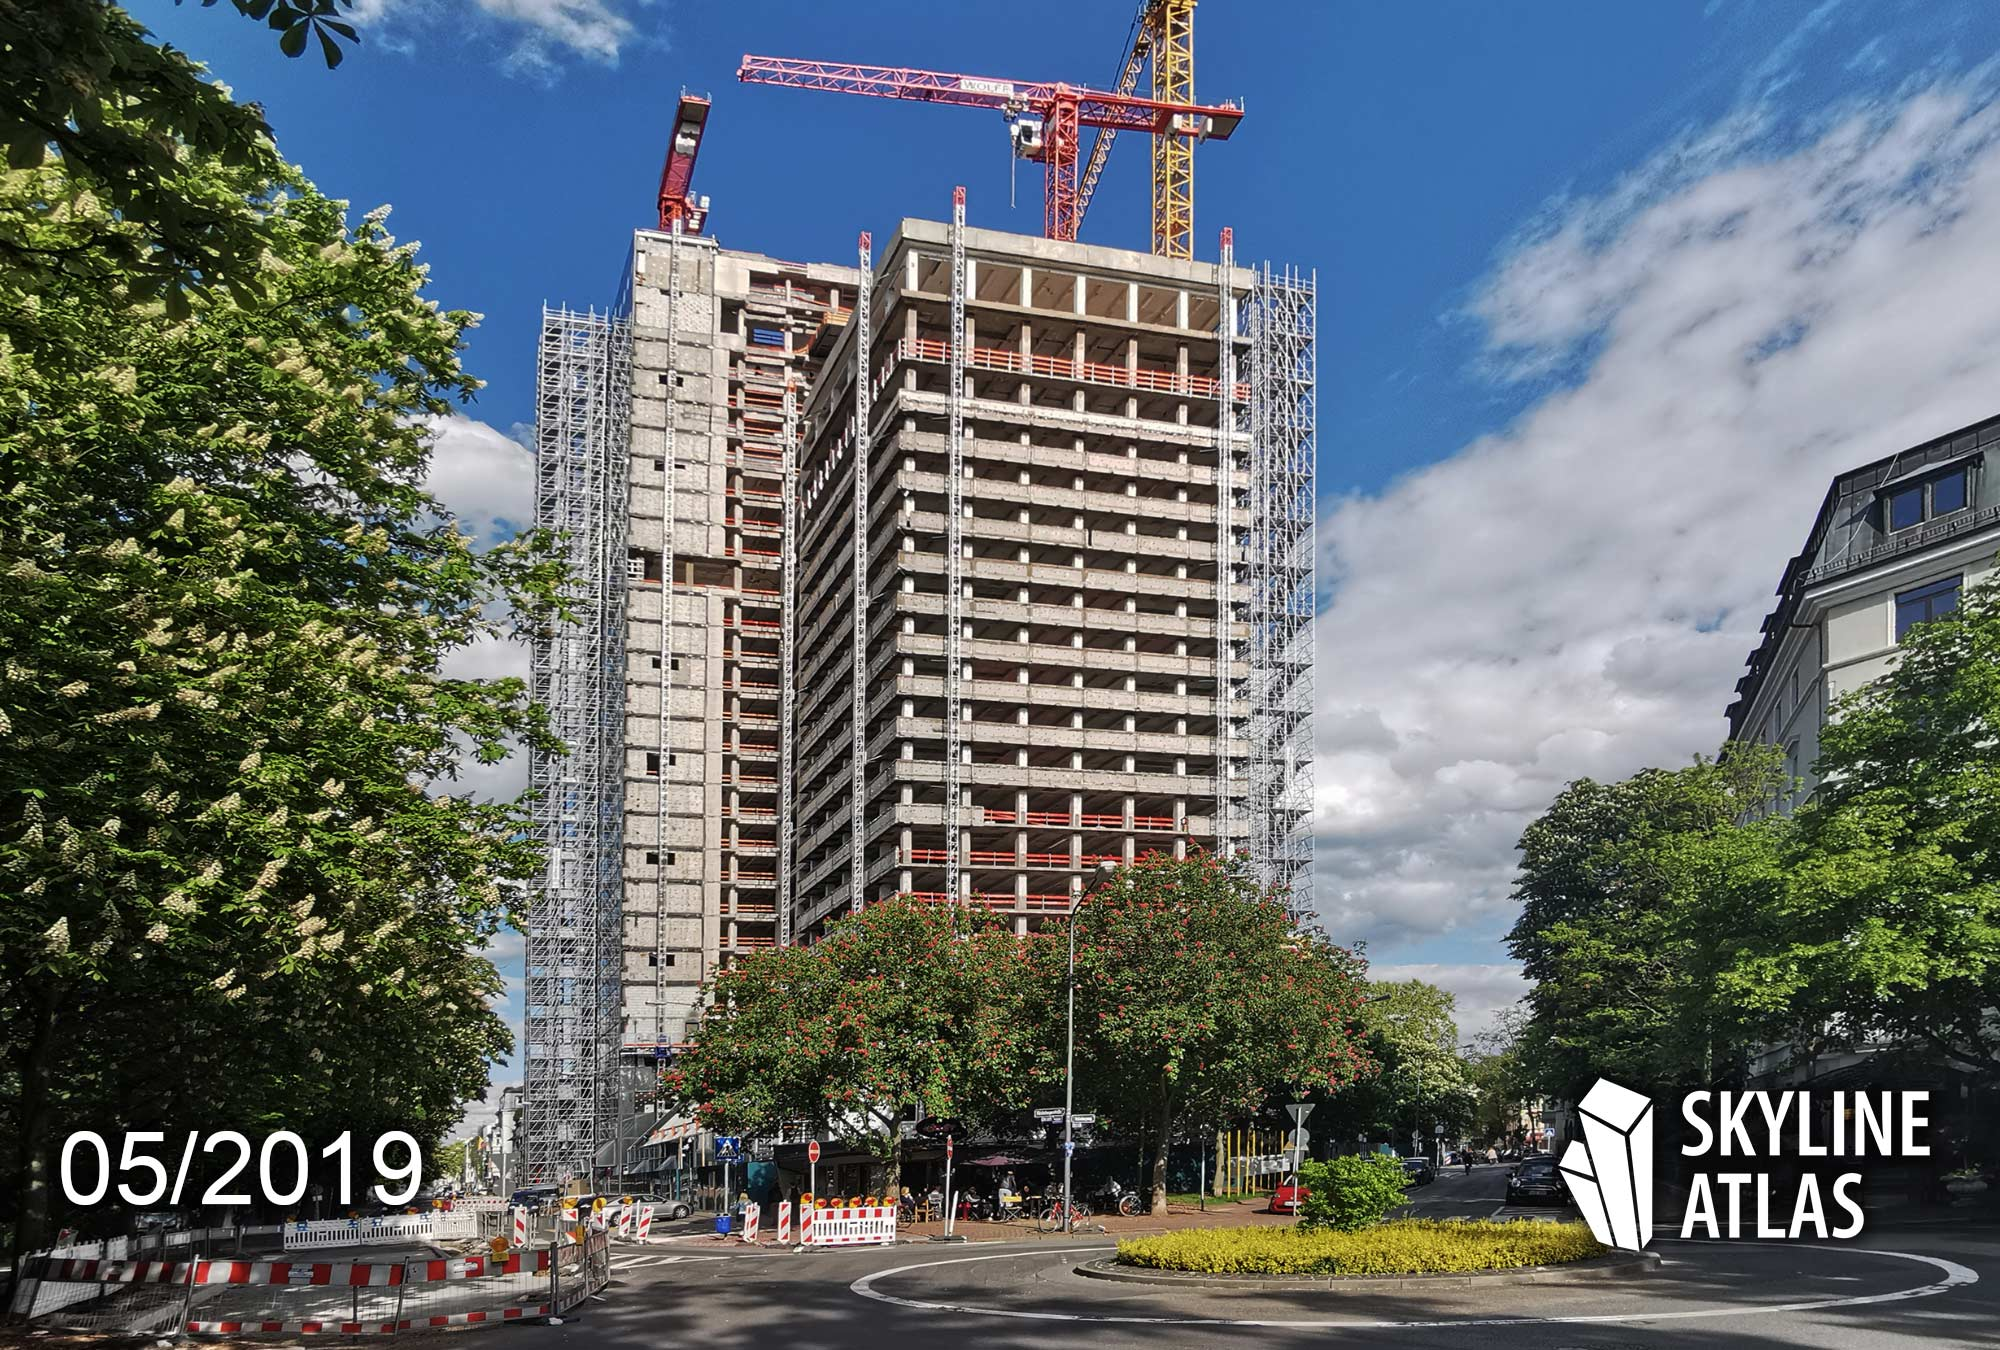 160 Park View Frankfurt Hotel - High-rise under construction - May 2019 - Hotel high-rise